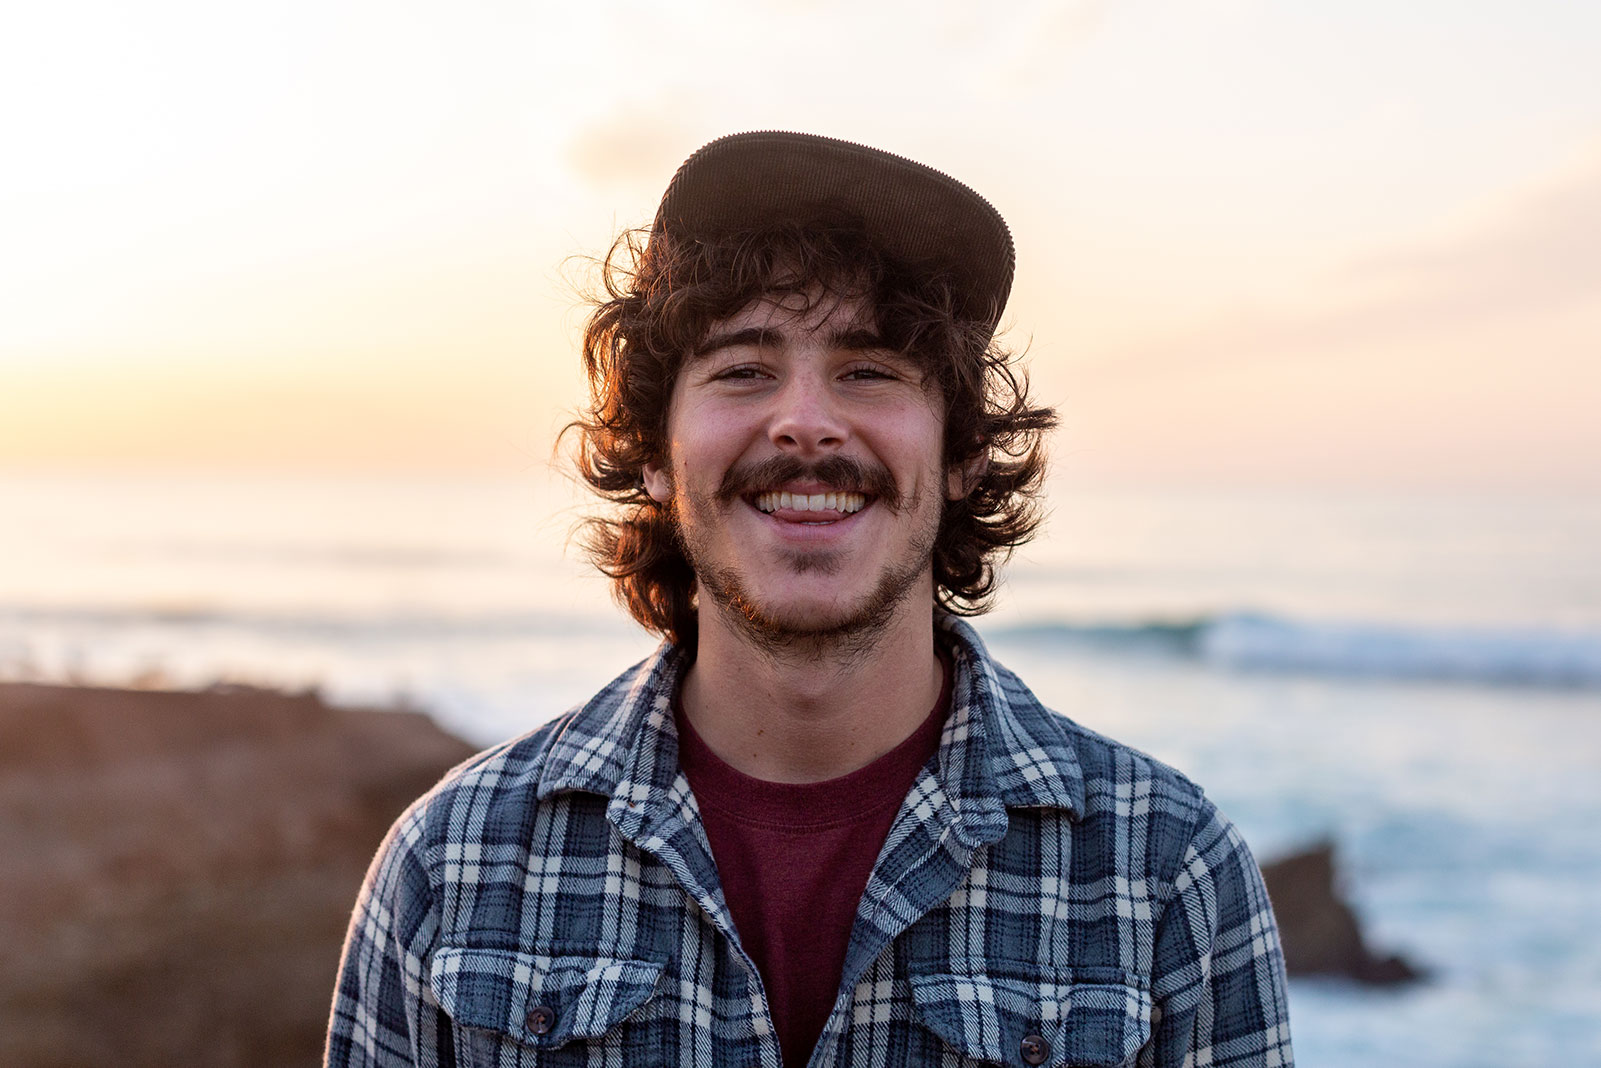 Close-up portrait of Cody wearing a hat and smiling against a blurry background of the coast at sunset